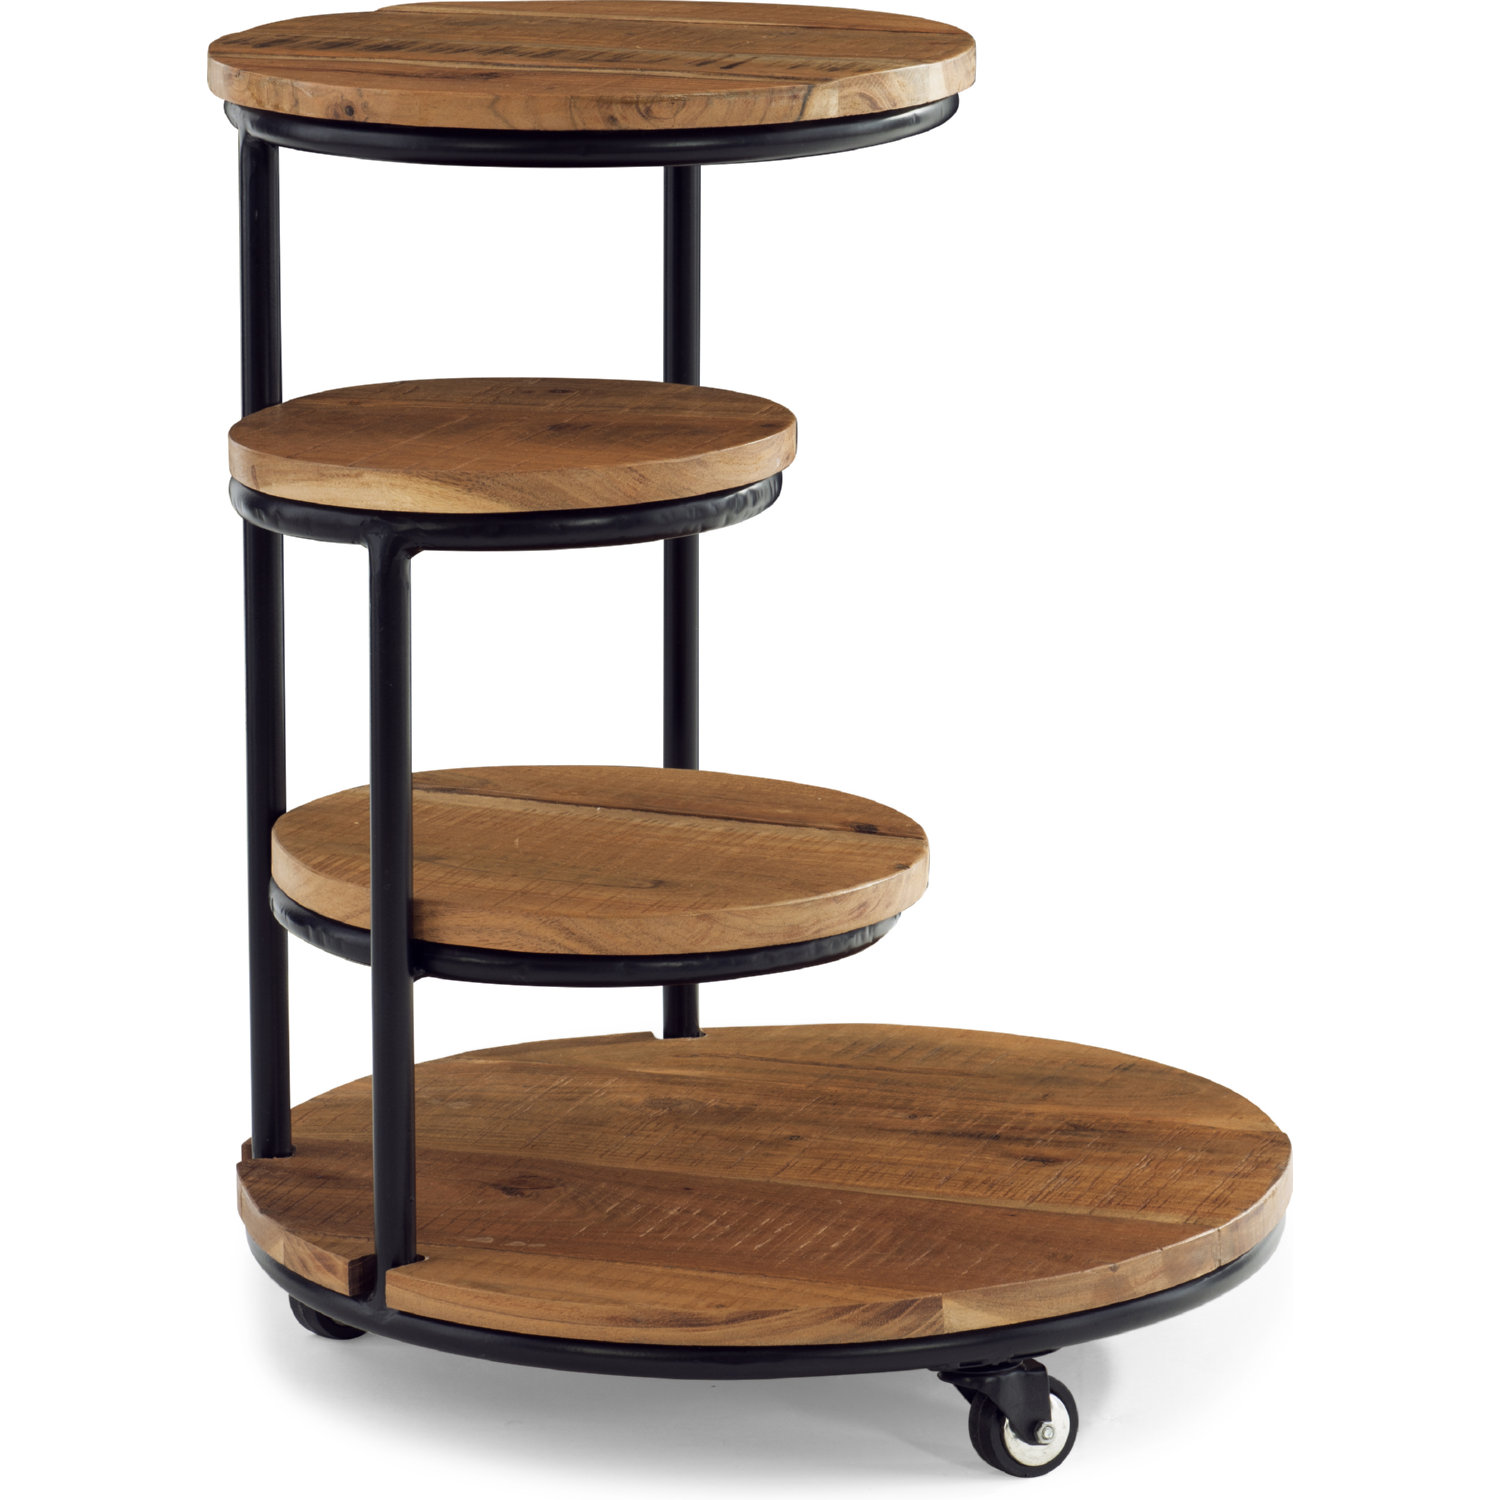 Powell D1247a19ps Collis 4 Tiered Plant Stand W Wheels In Wood Black